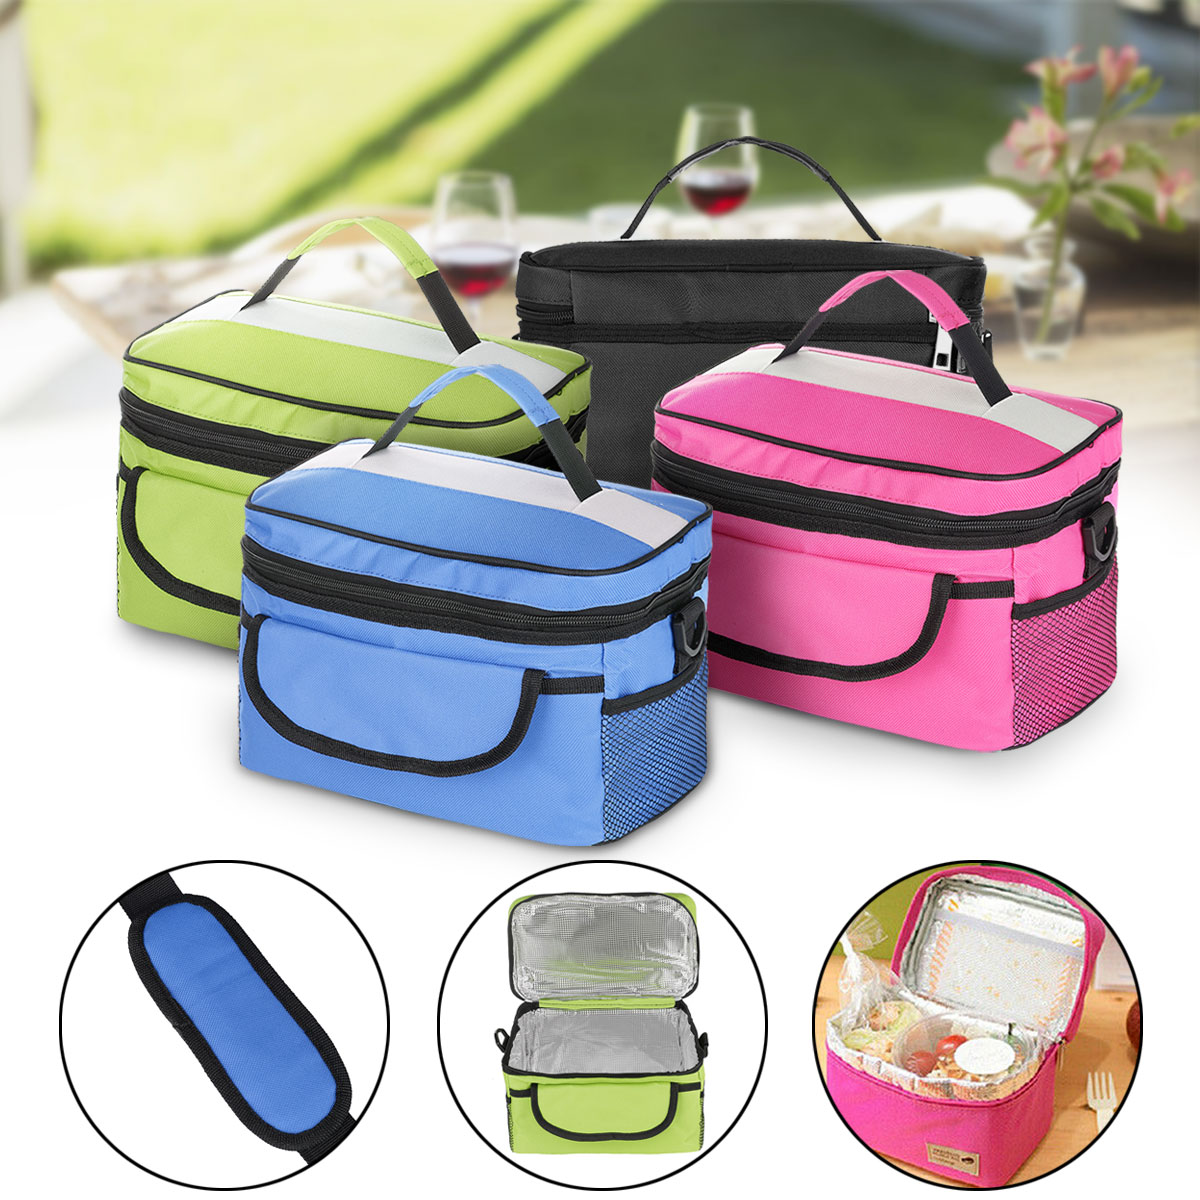 Waterproof Portable Thermal Insulated Lunch Box Food Storage Bag Picnic Carry Tote